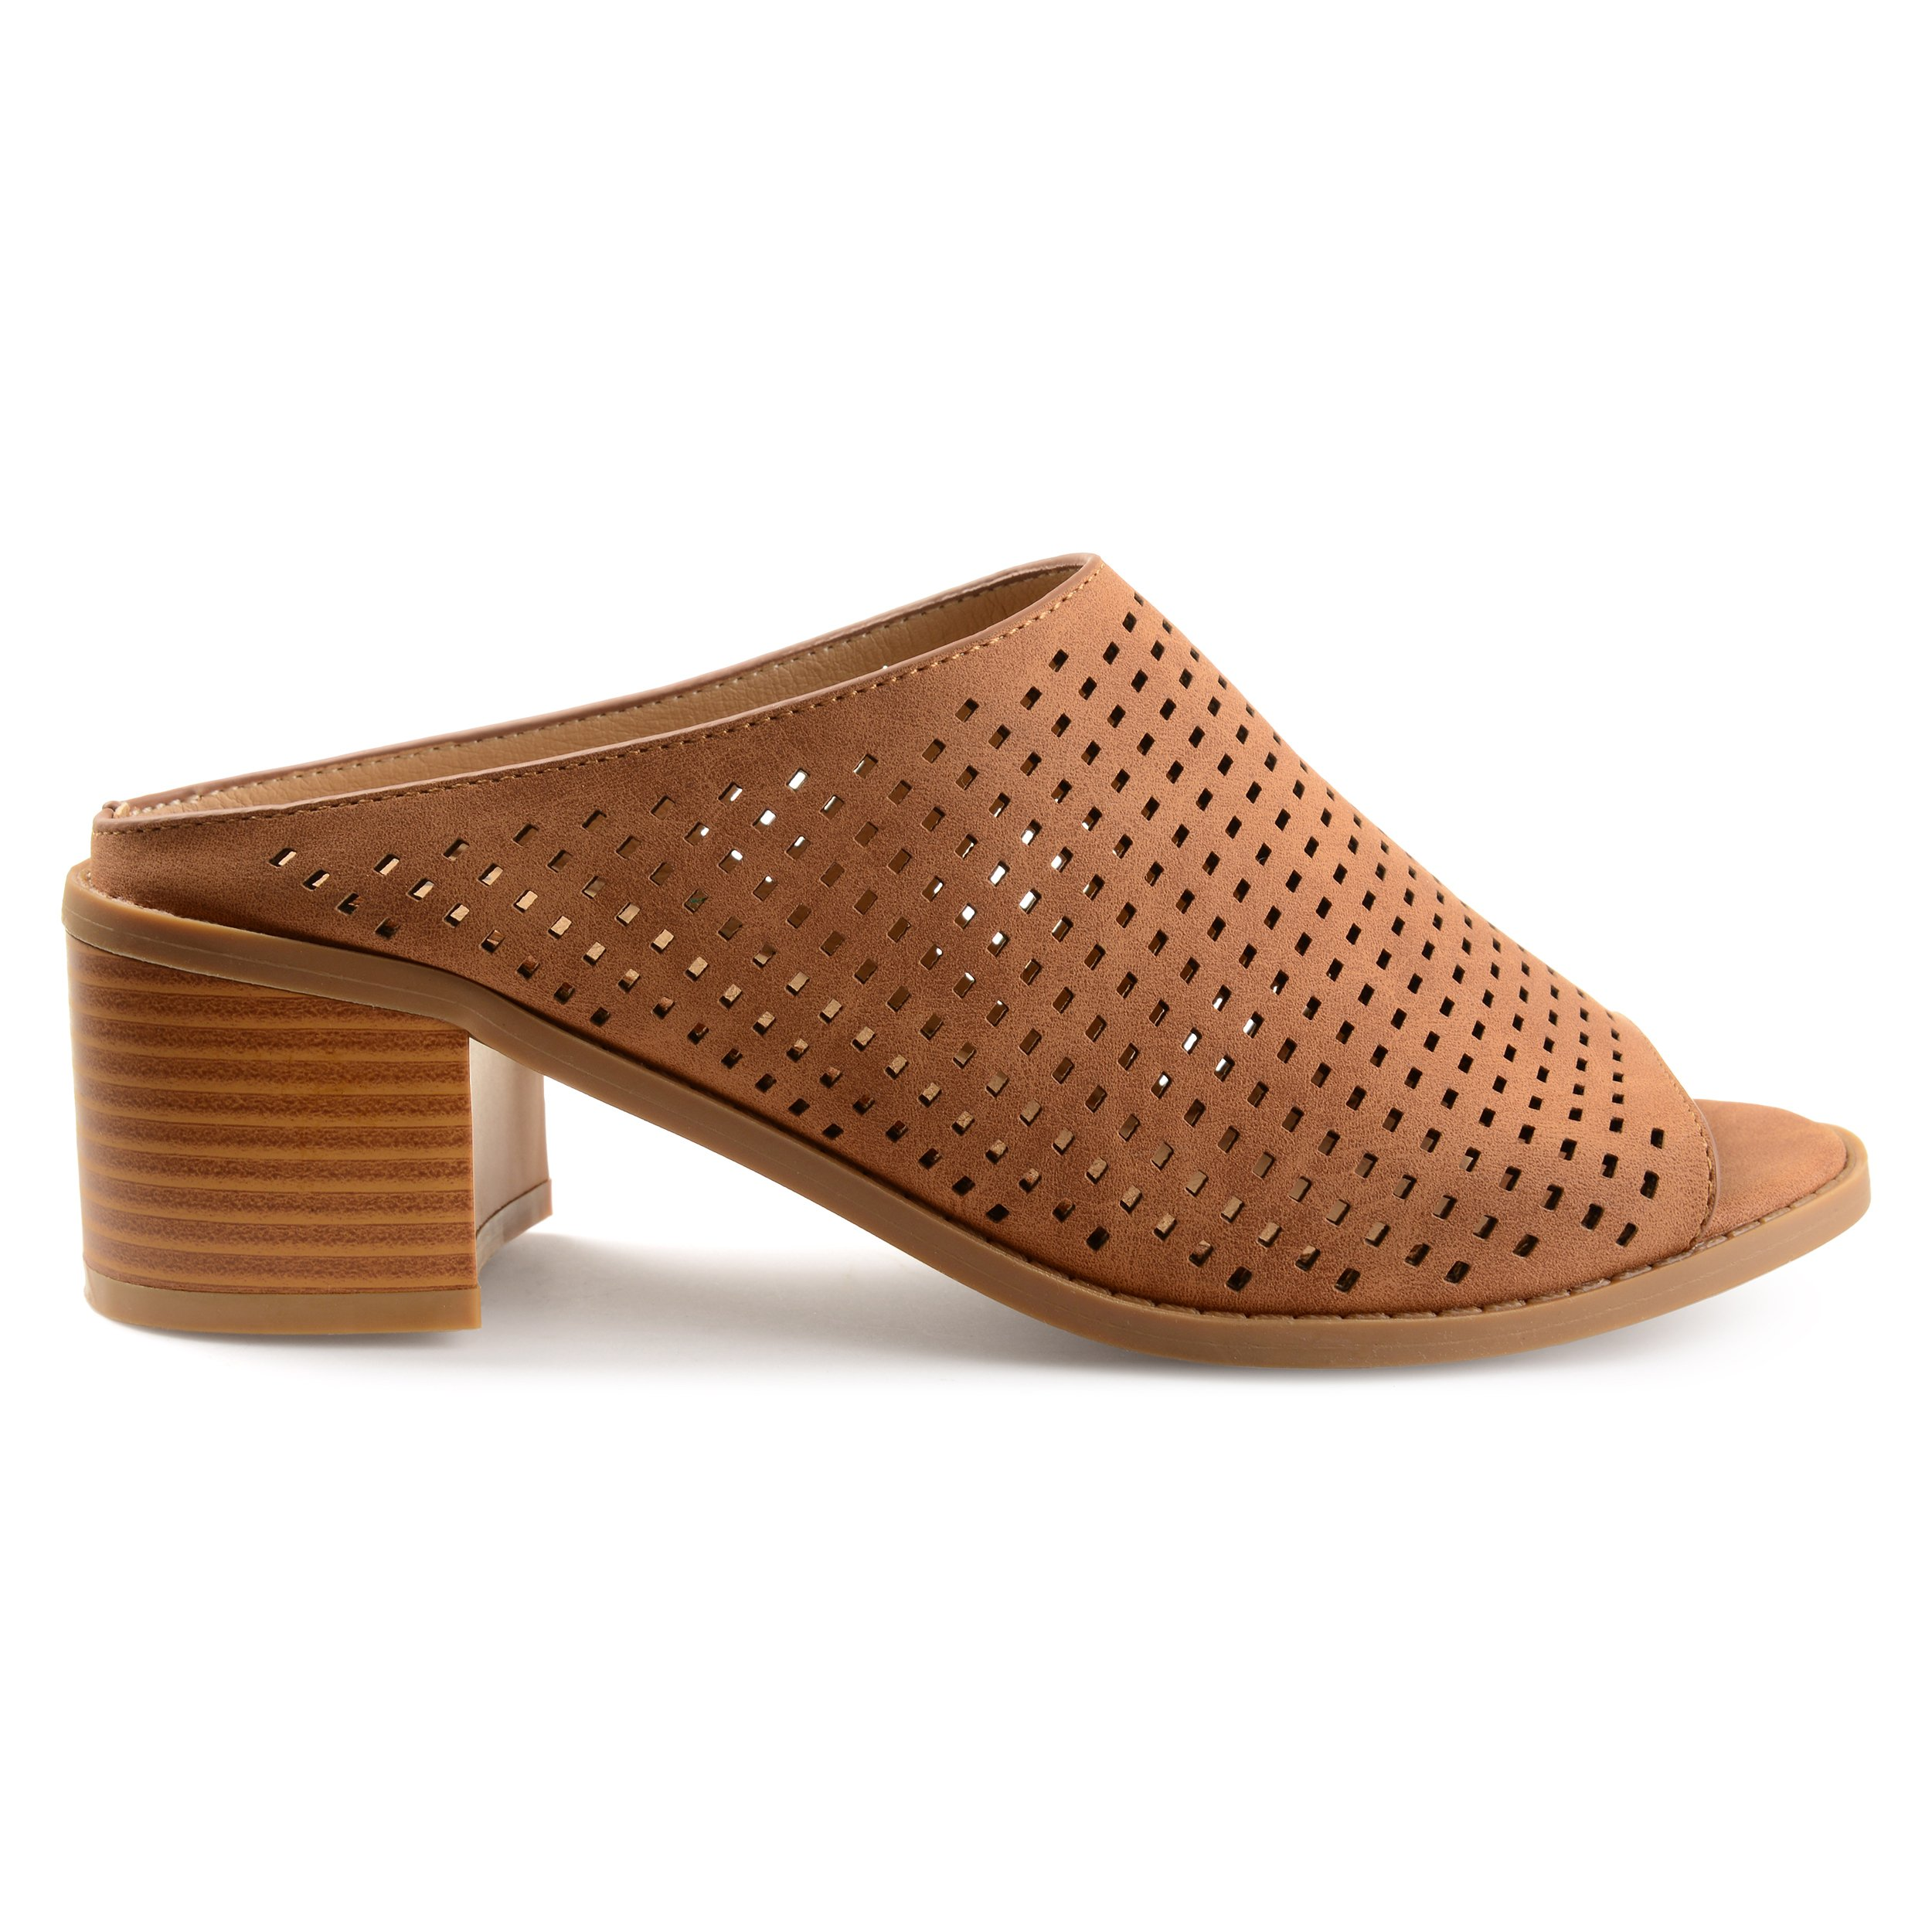 Brinley Co. Womens Zess Faux Nubuck Open-Toe Perforated Mules Brown, 6.5 Regular US